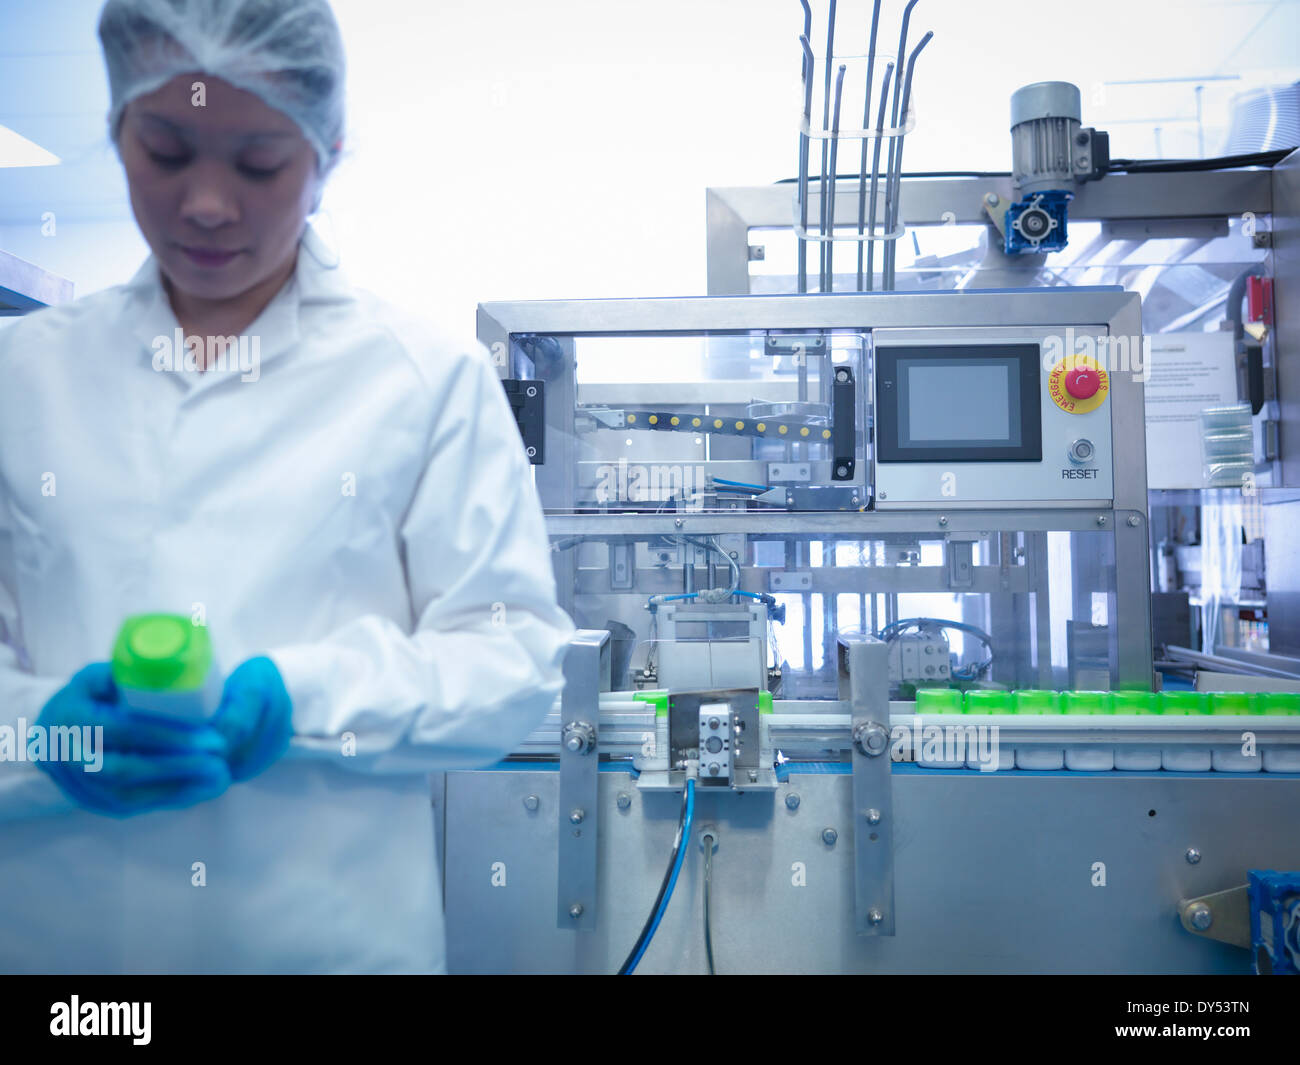 Worker inspecting products on production line in pharmaceutical factory - Stock Image